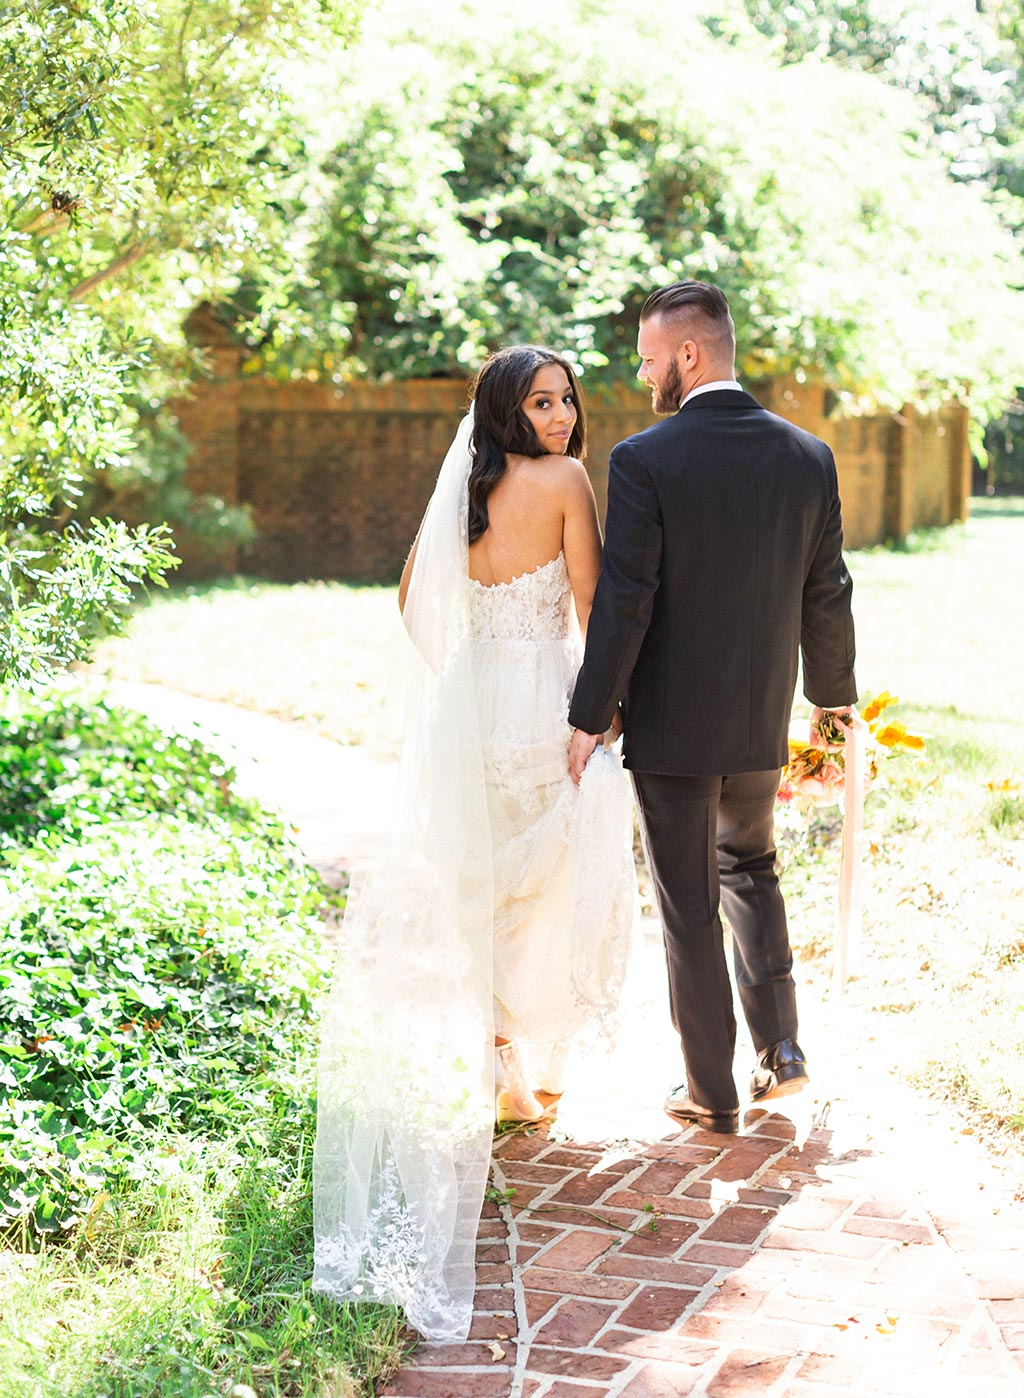 Bride in Lace Wedding Dress and Groom in Blace Tuxedo